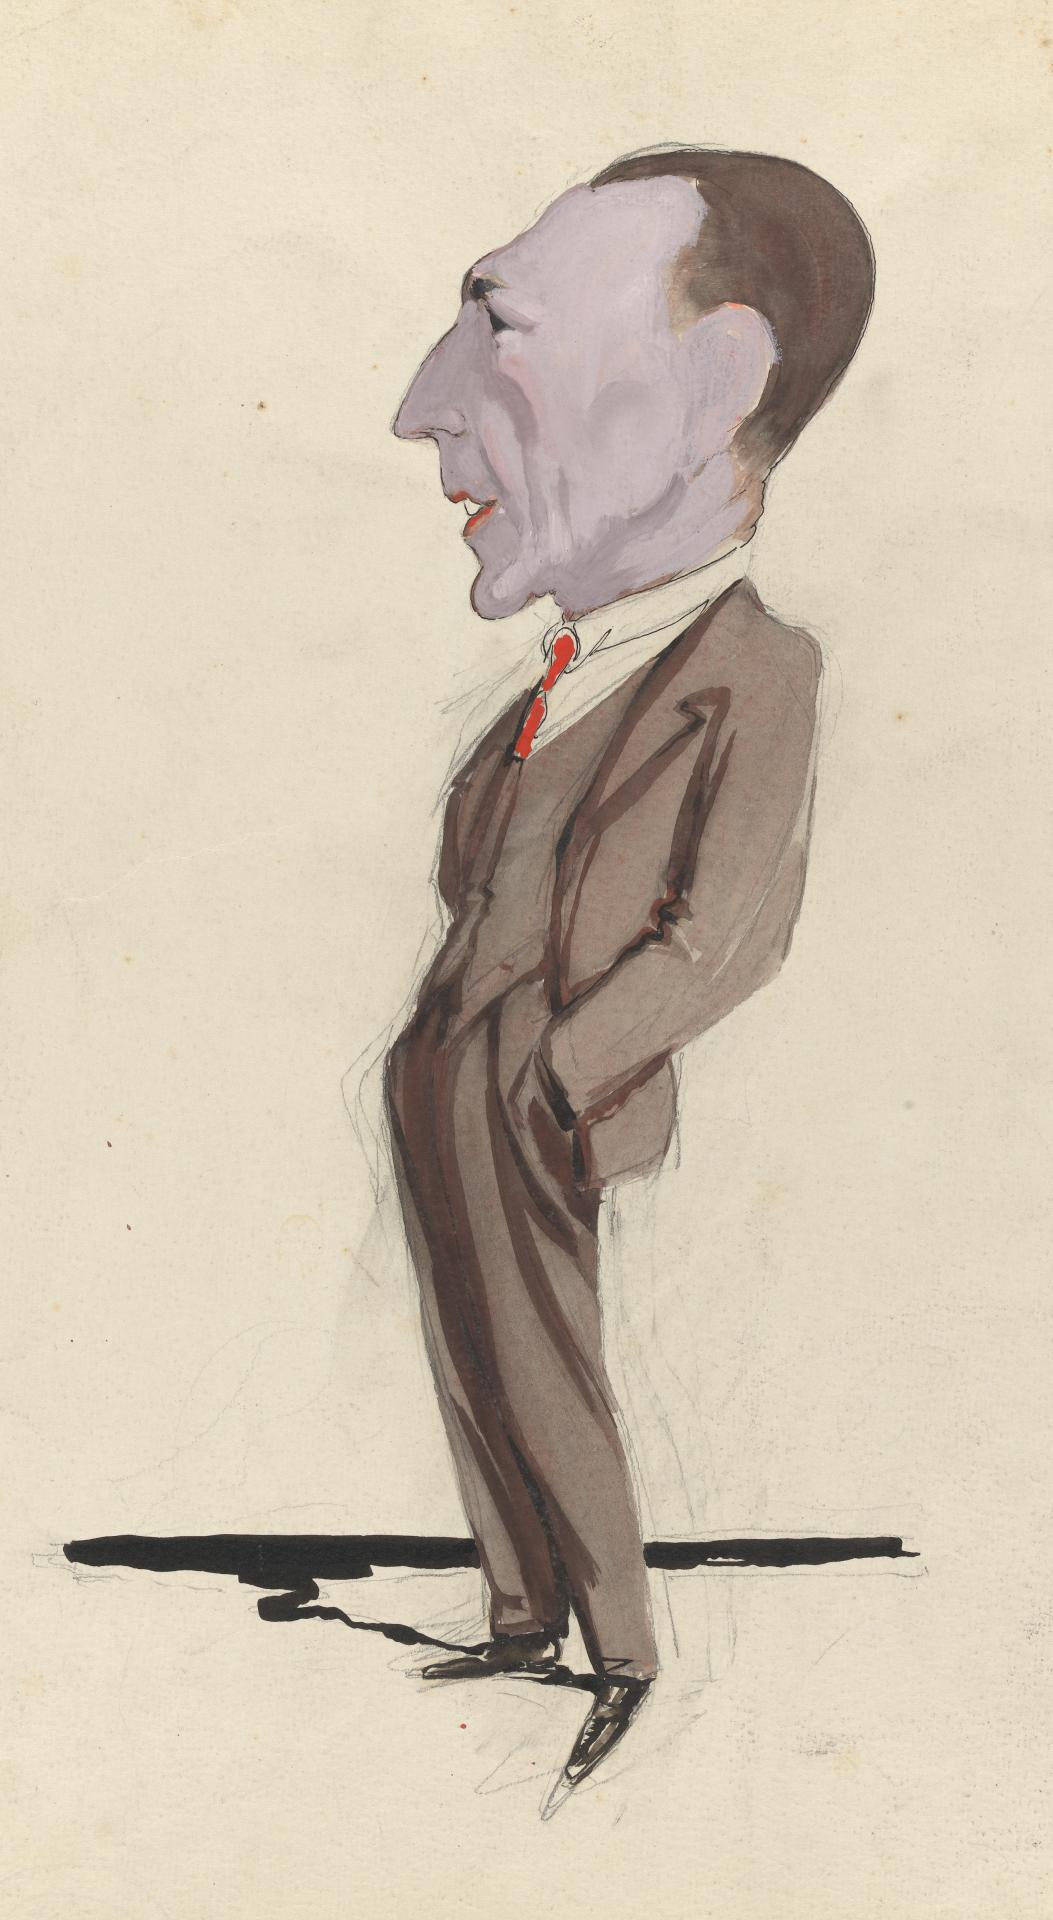 (Caricature of standing figure)